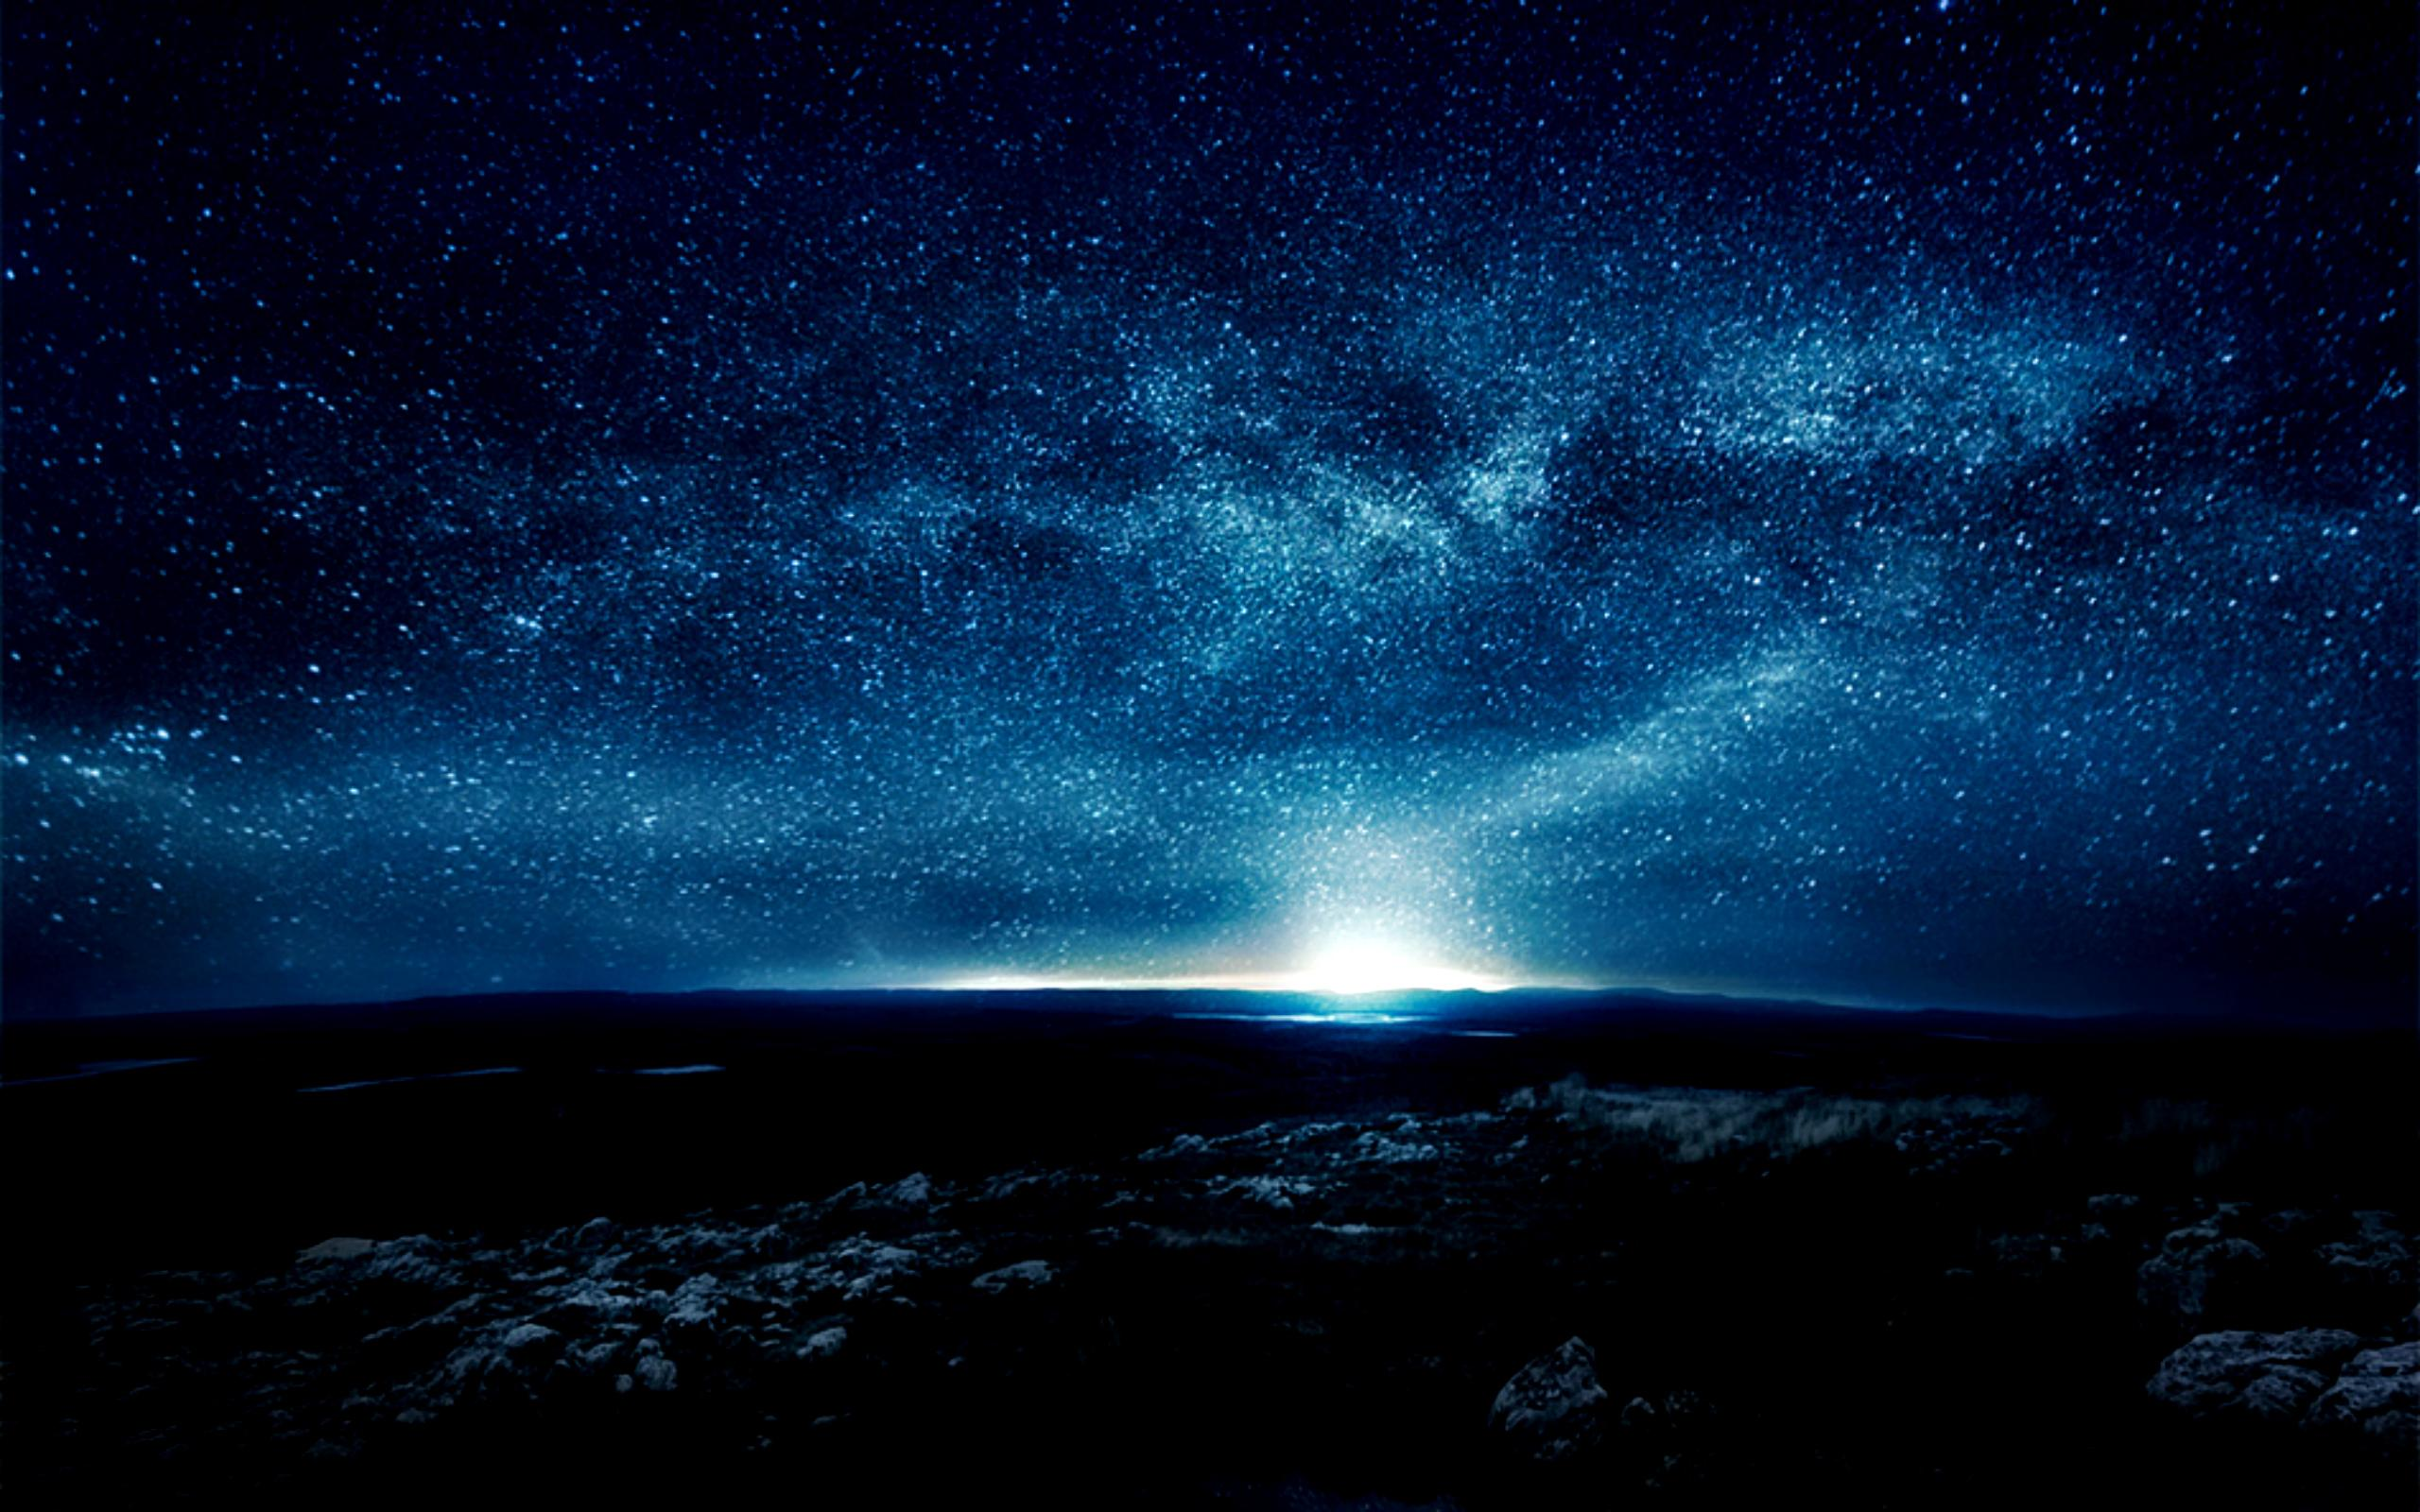 Starry Night Sky Wallpaper